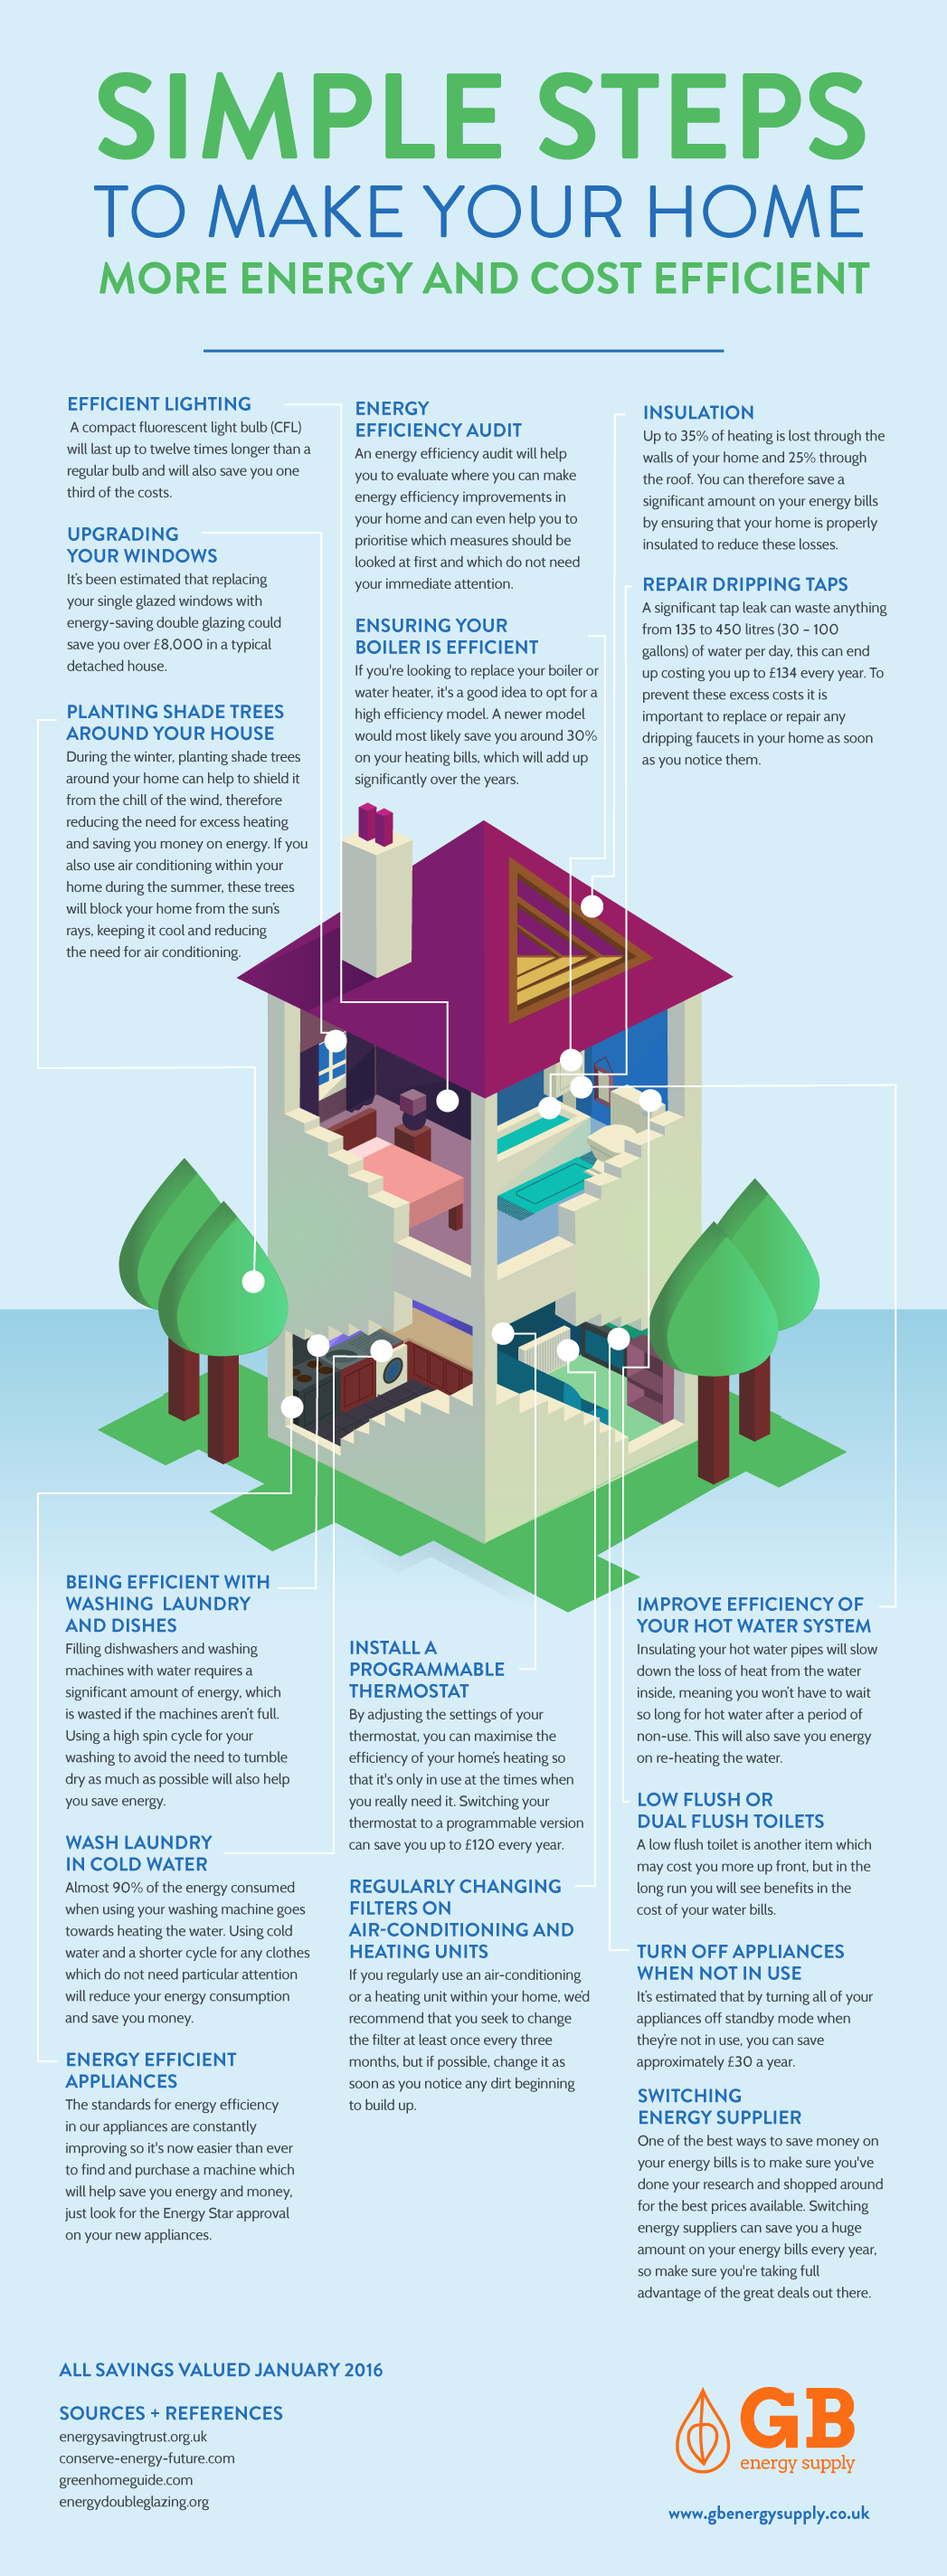 simple steps to make your home more energy efficient #infographic